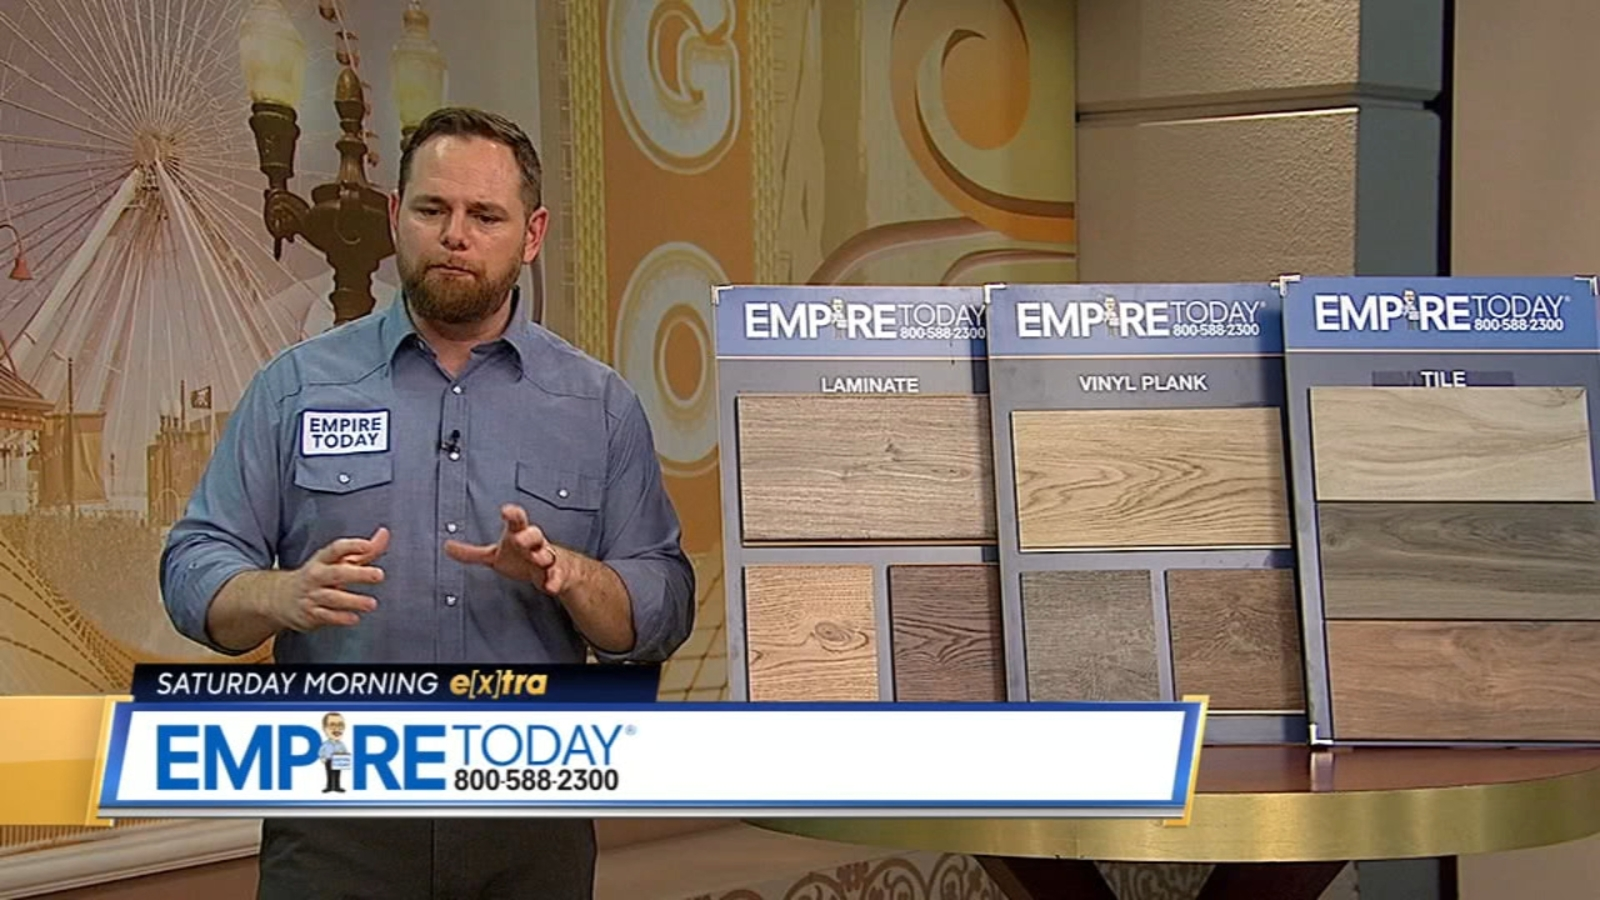 Saturday Morning Extra Latest Flooring Trends With Empire